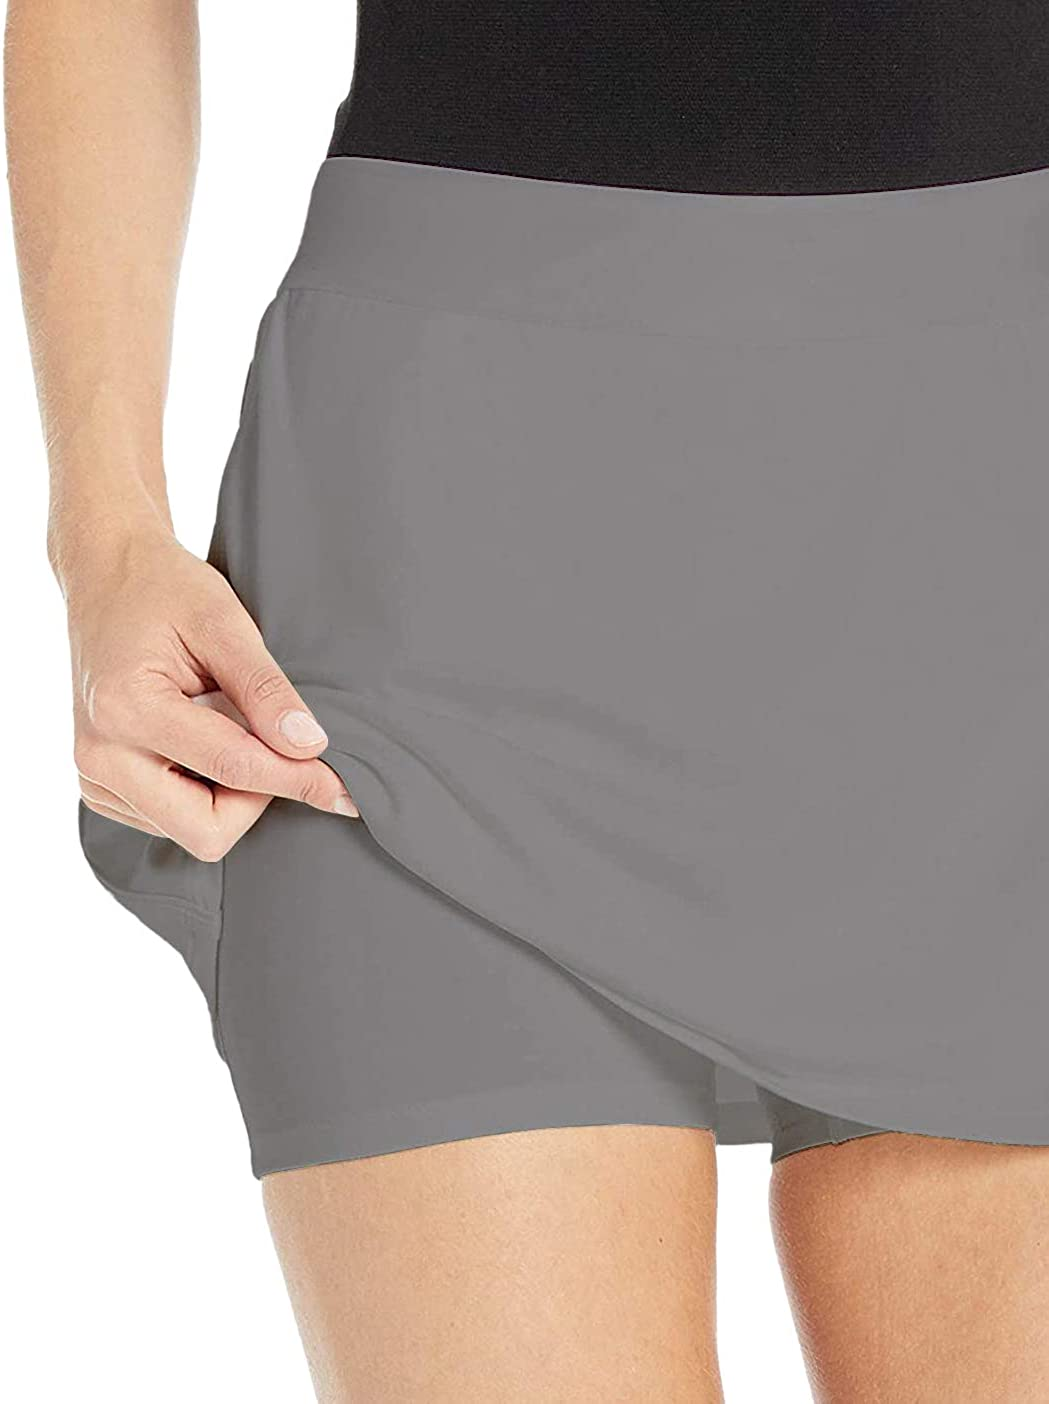 TAIPOVE Women's Active Athletic Skorts Superior Skirt Mini Sh Tennis with Credence